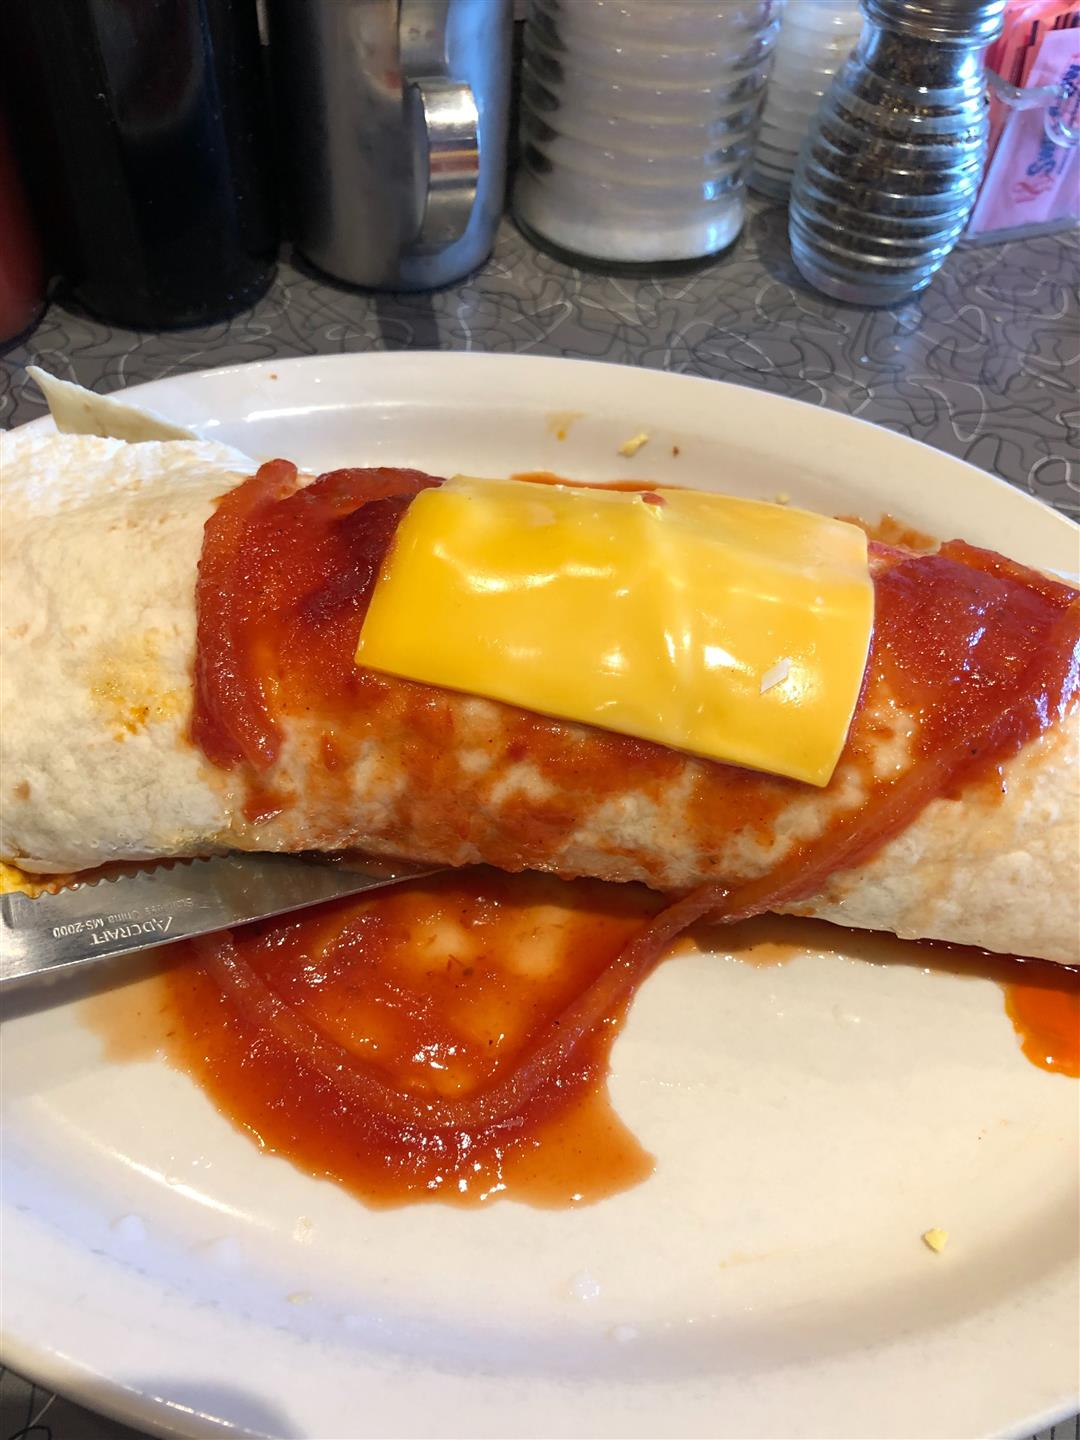 a breakfast burrito covered in red sauce and an american cheese slice on a plate